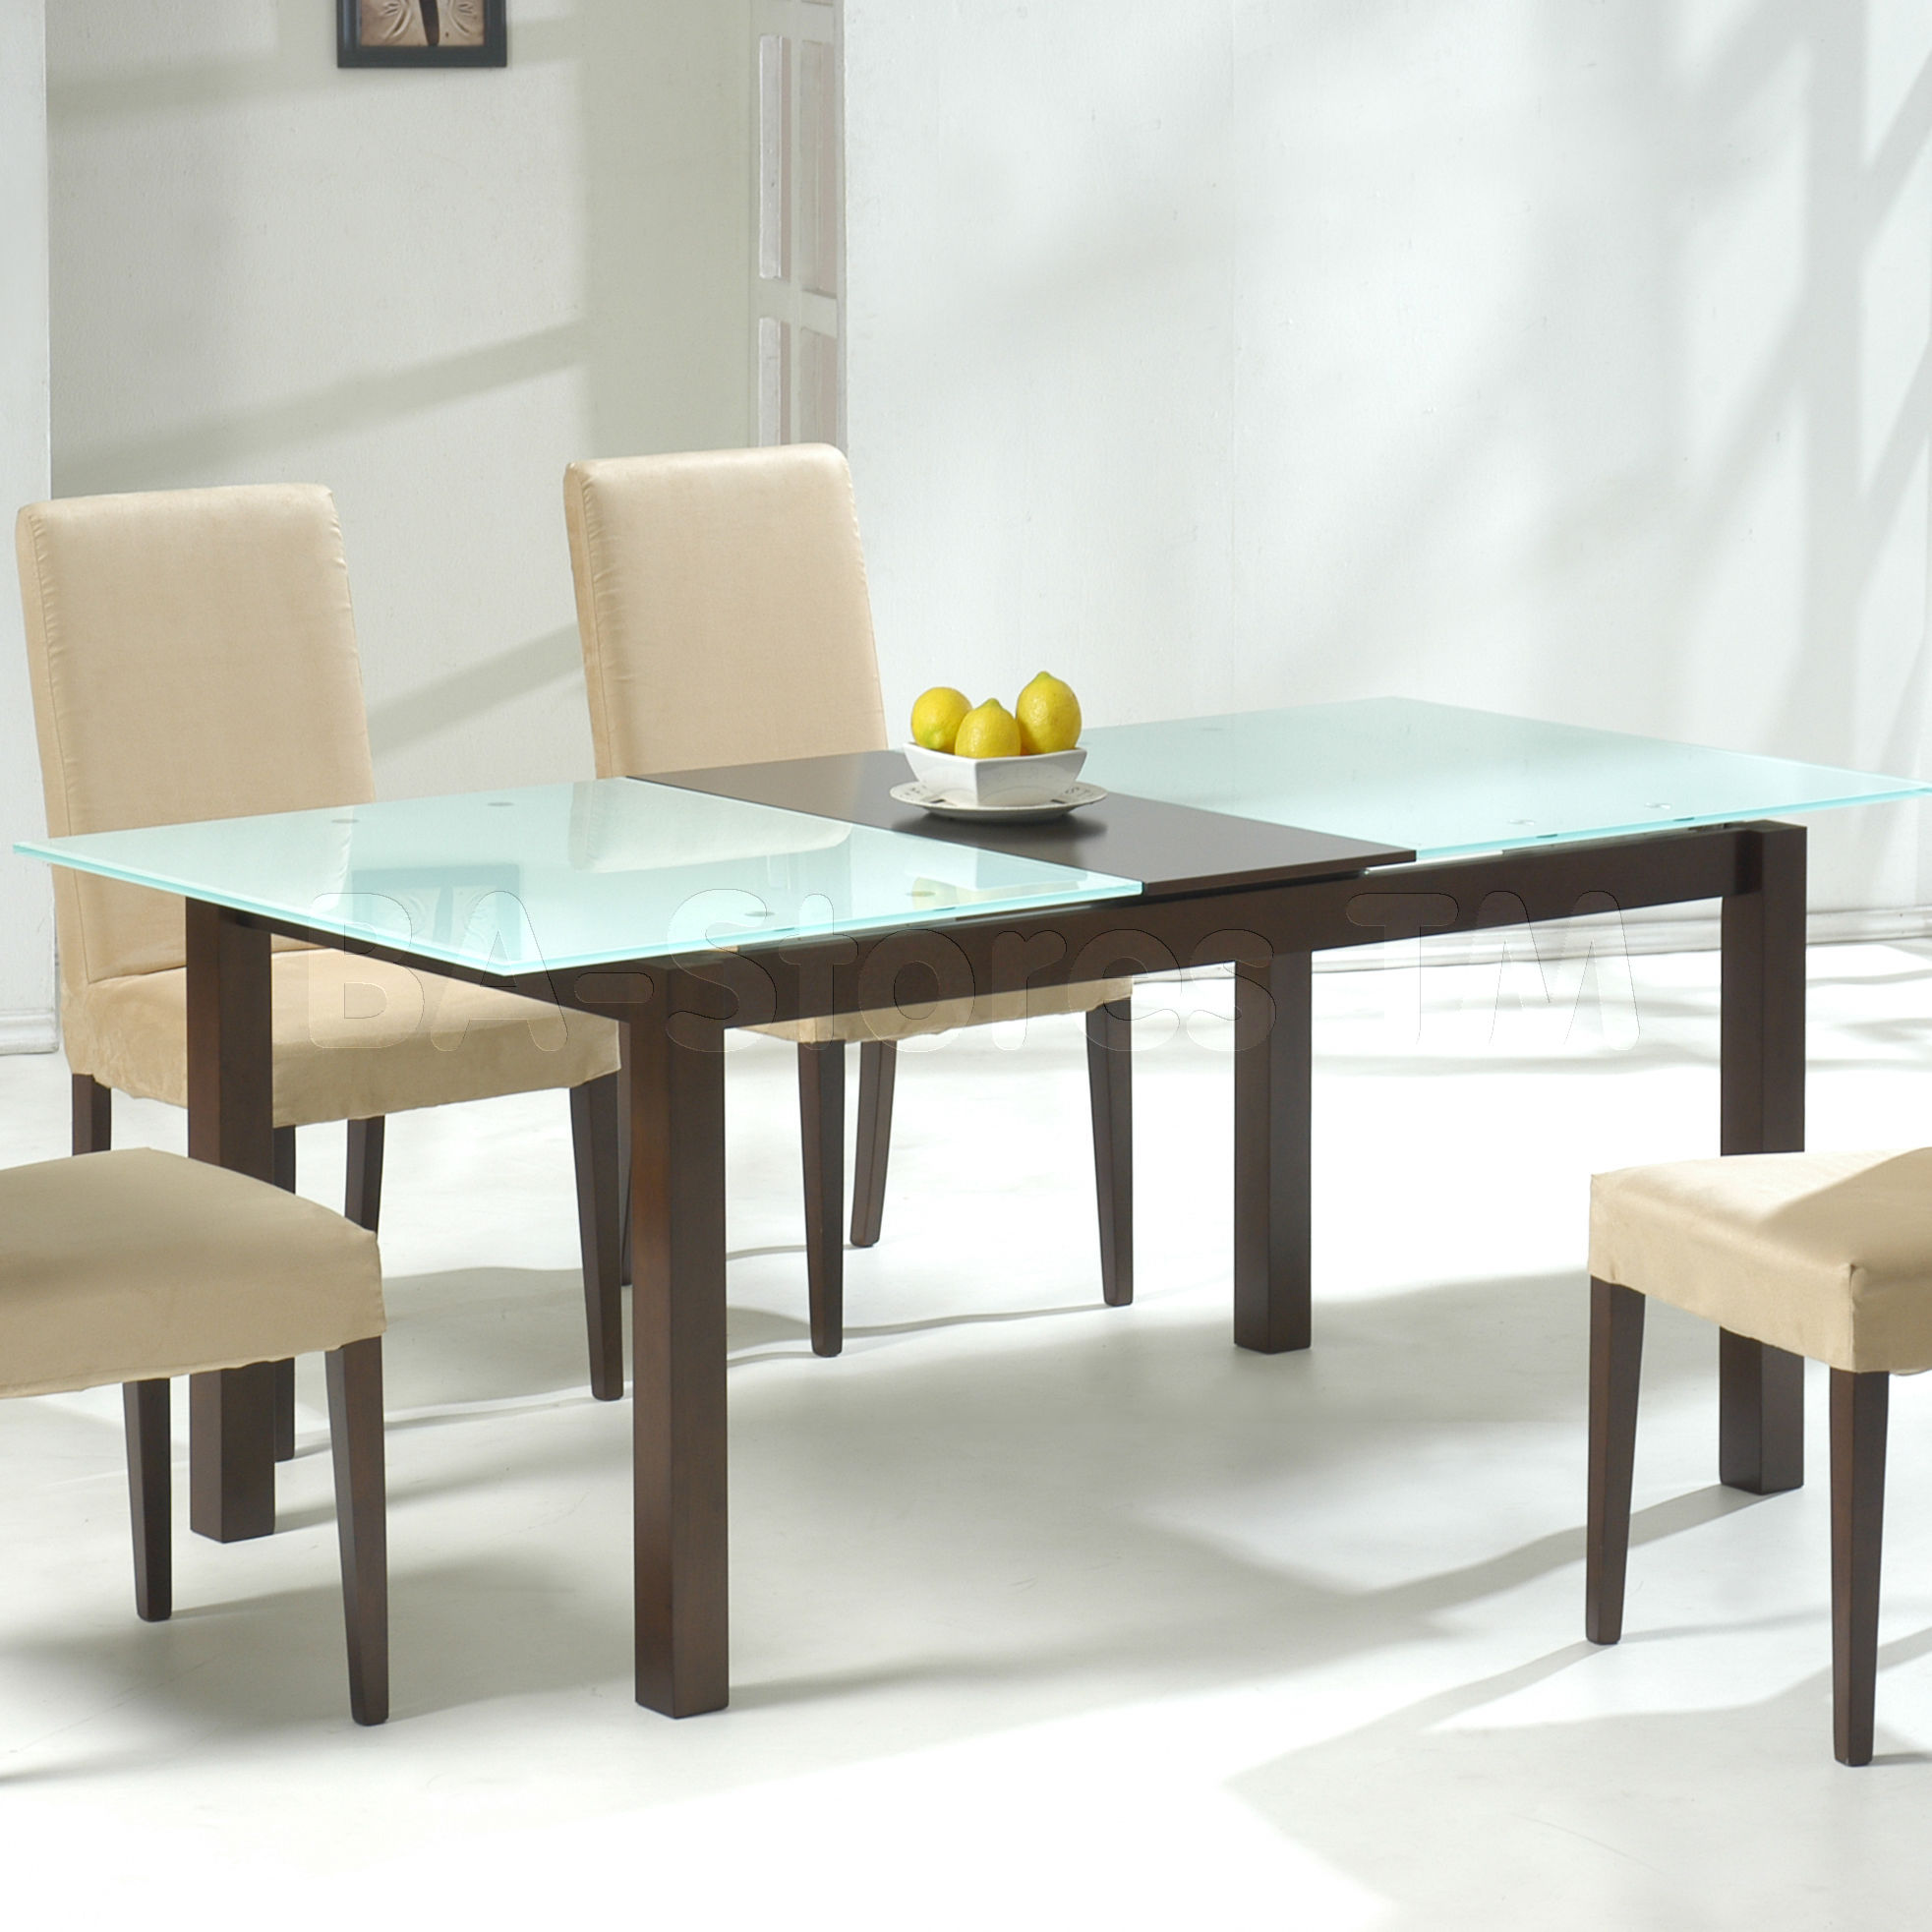 Small rectangular dining table homesfeed for Small dining table and chairs